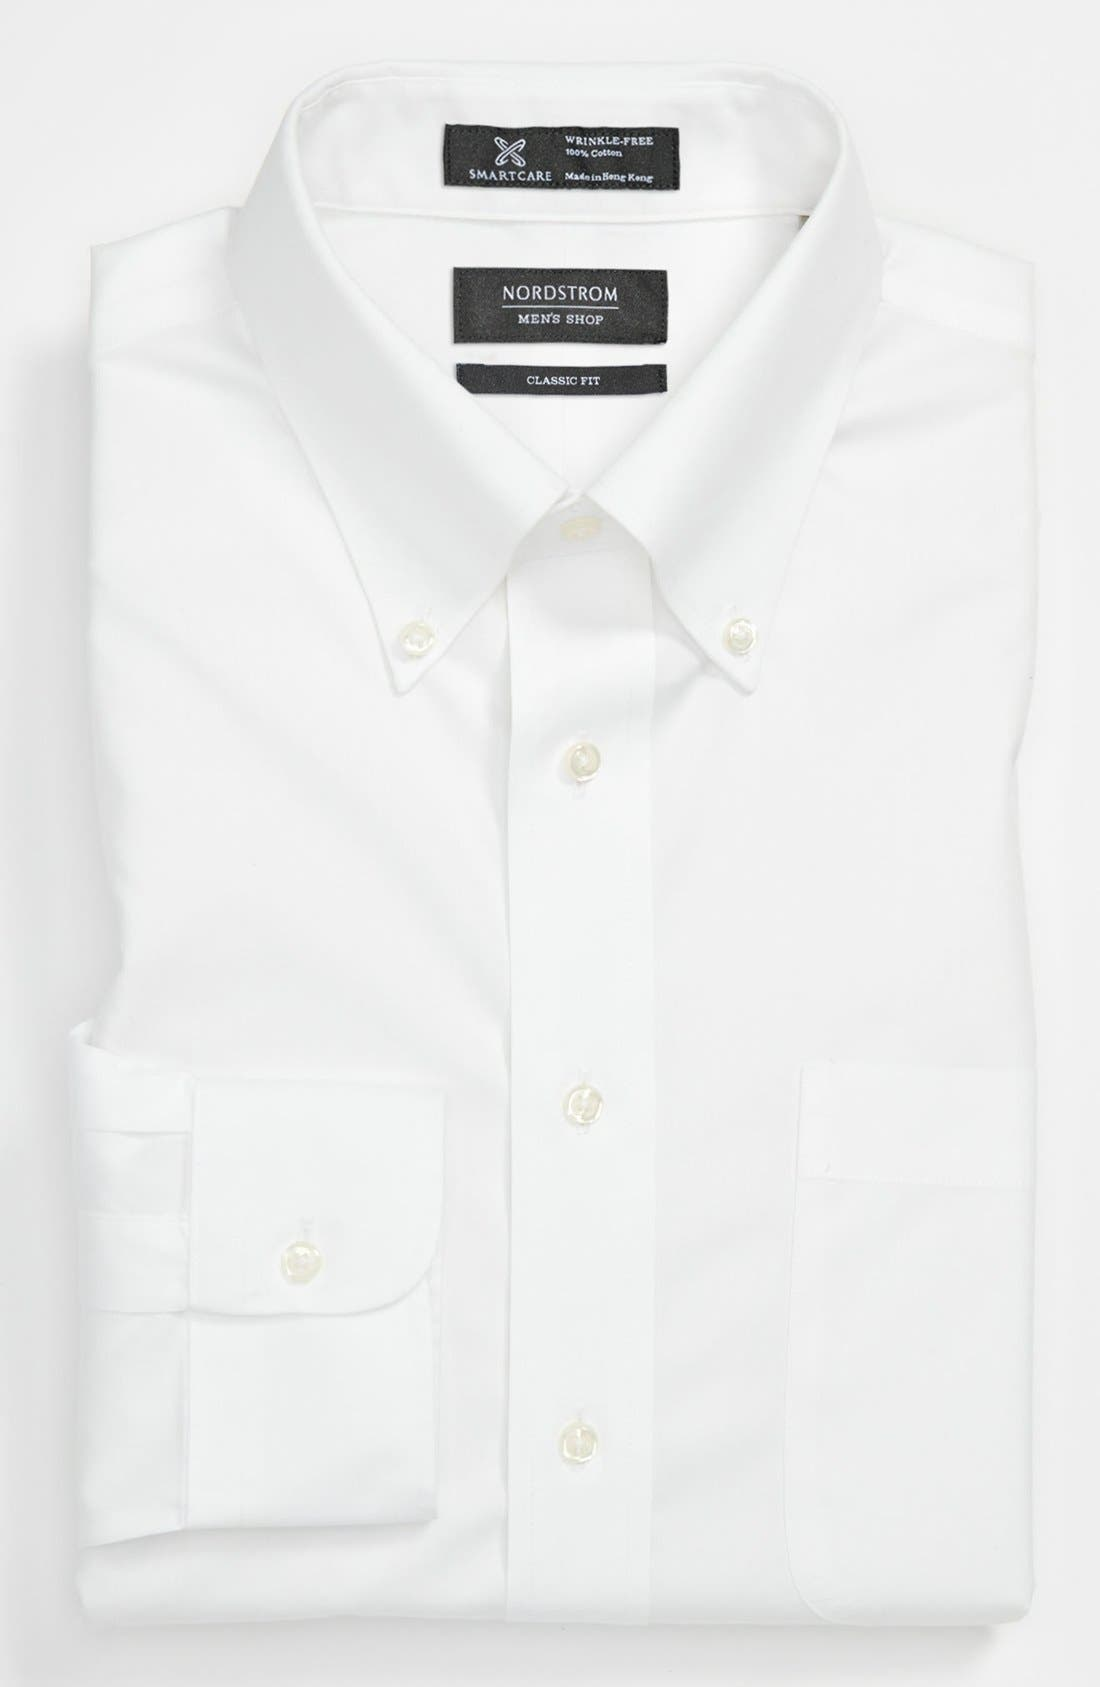 Alternate Image 1 Selected - Nordstrom Men's Shop Smartcare™ Classic Fit Pinpoint Dress Shirt (Online Only)